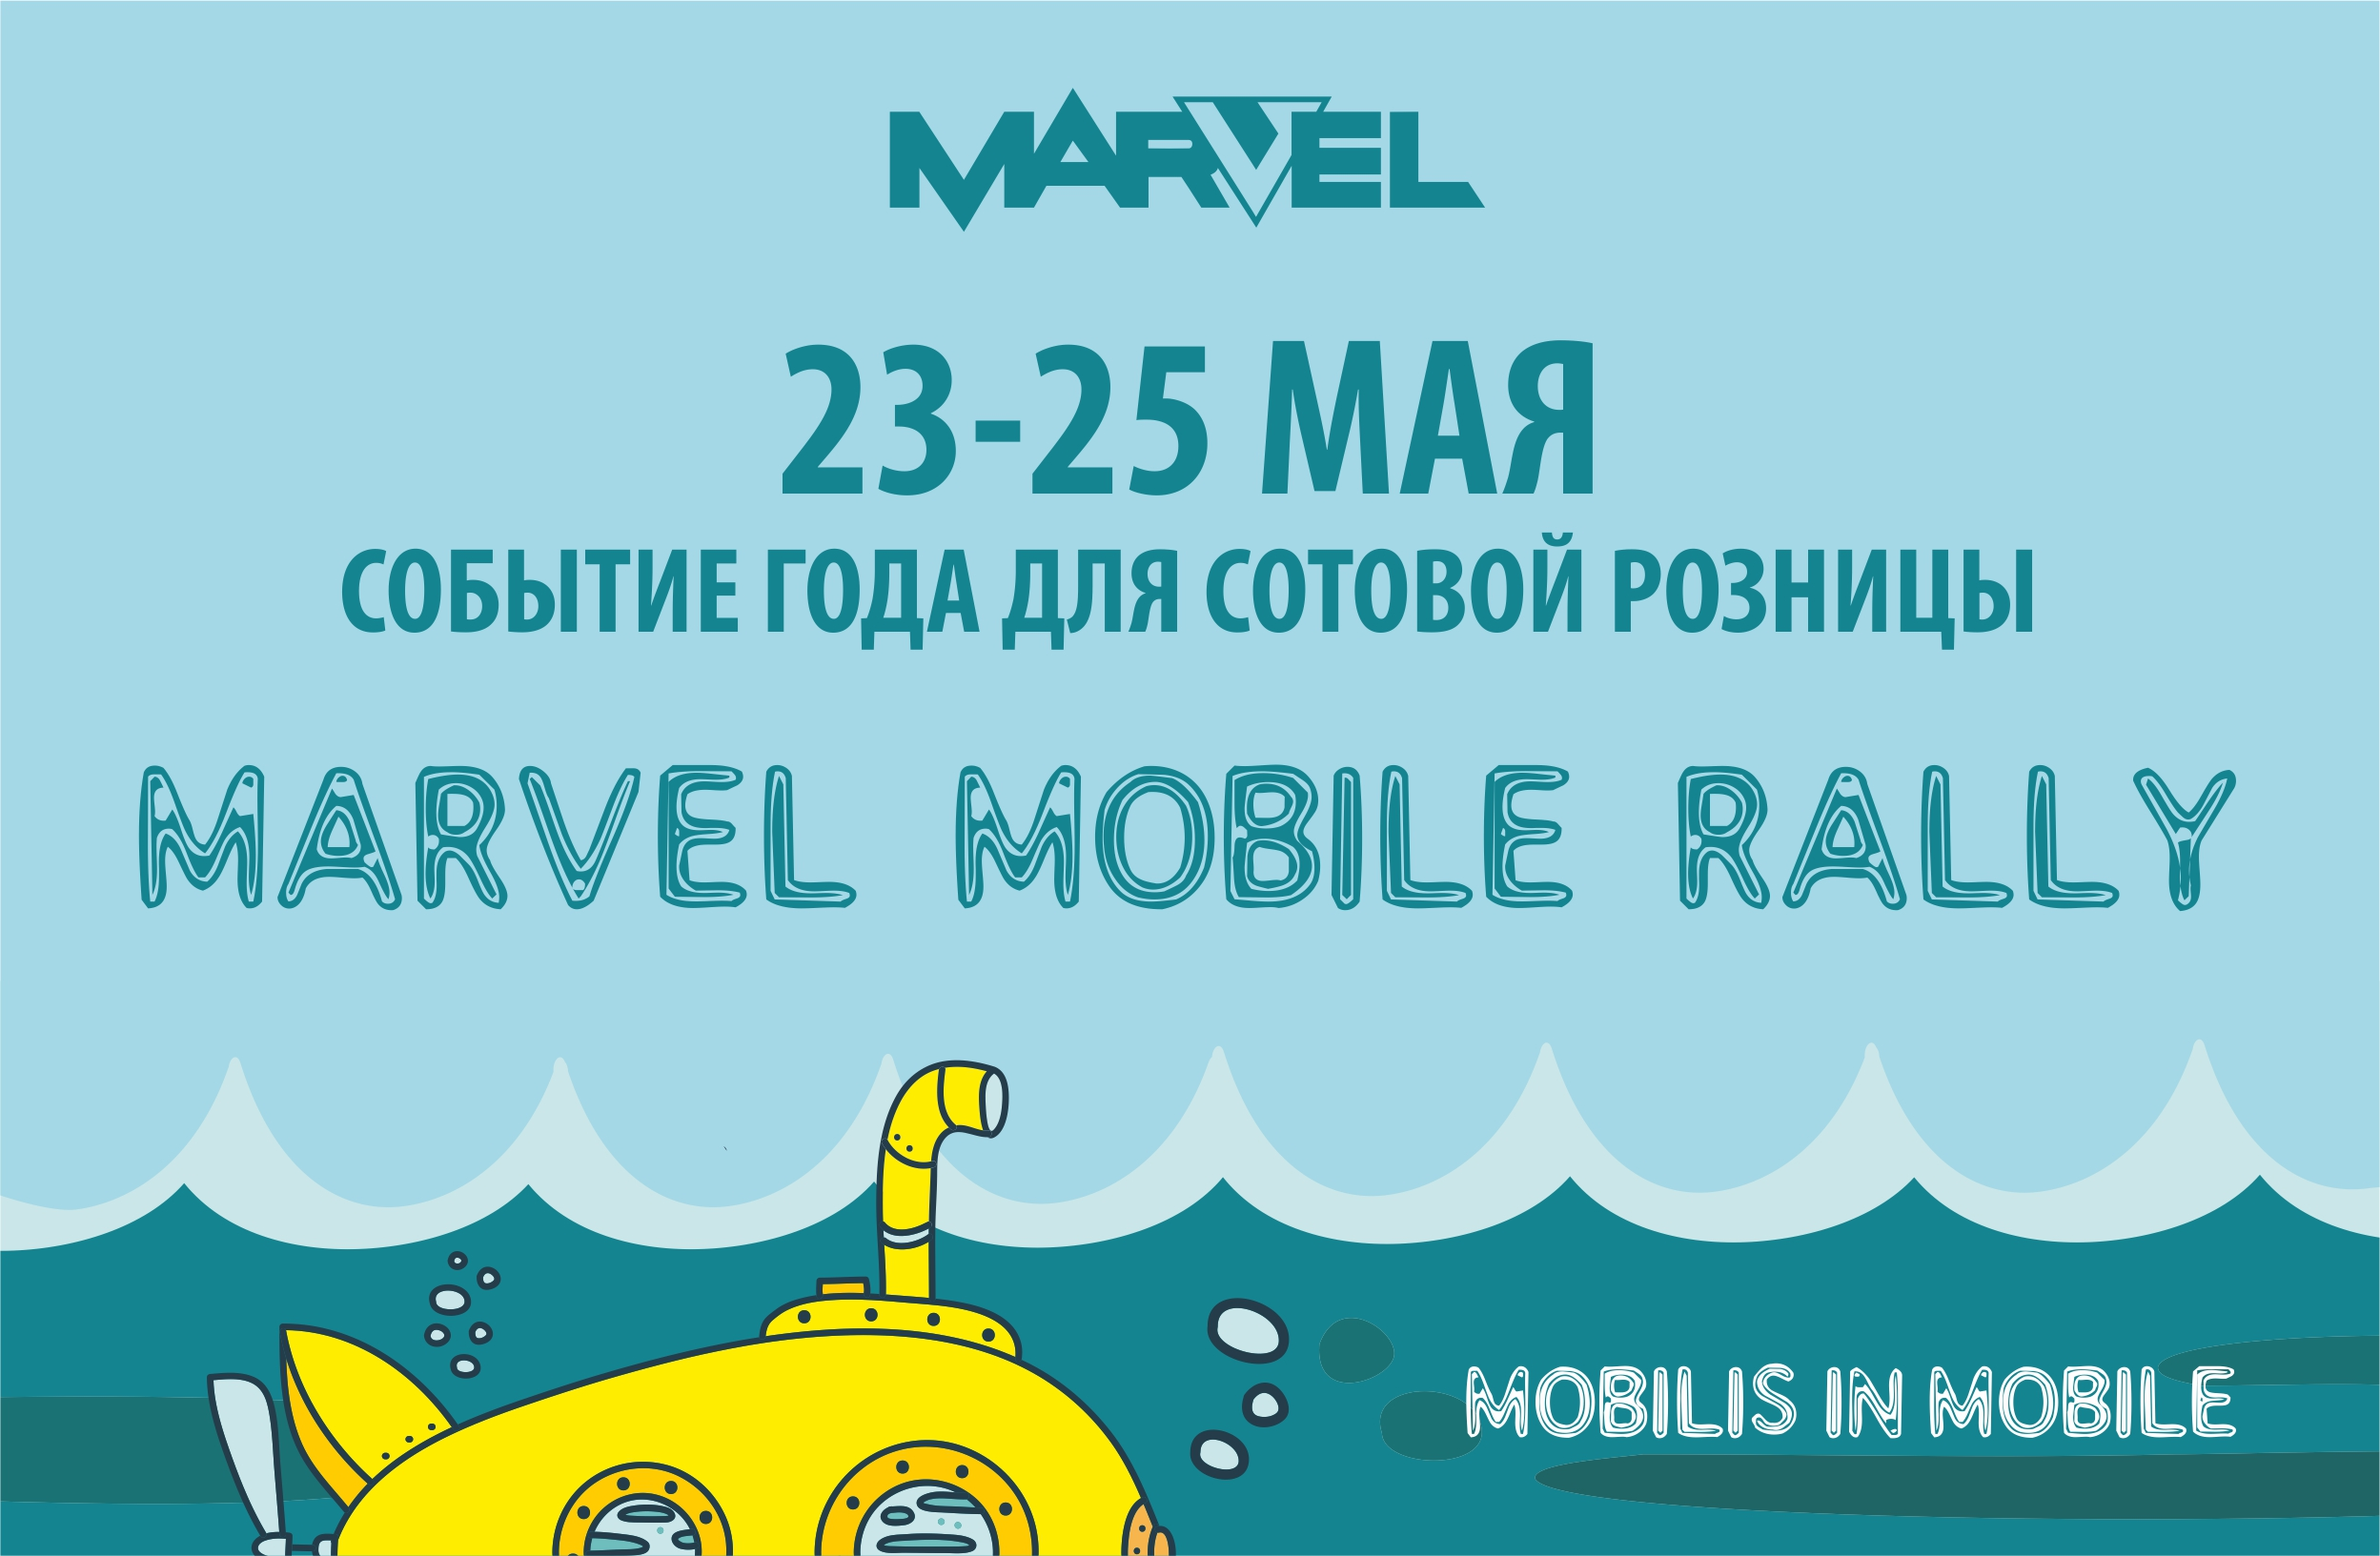 marvel mobile rally 2019